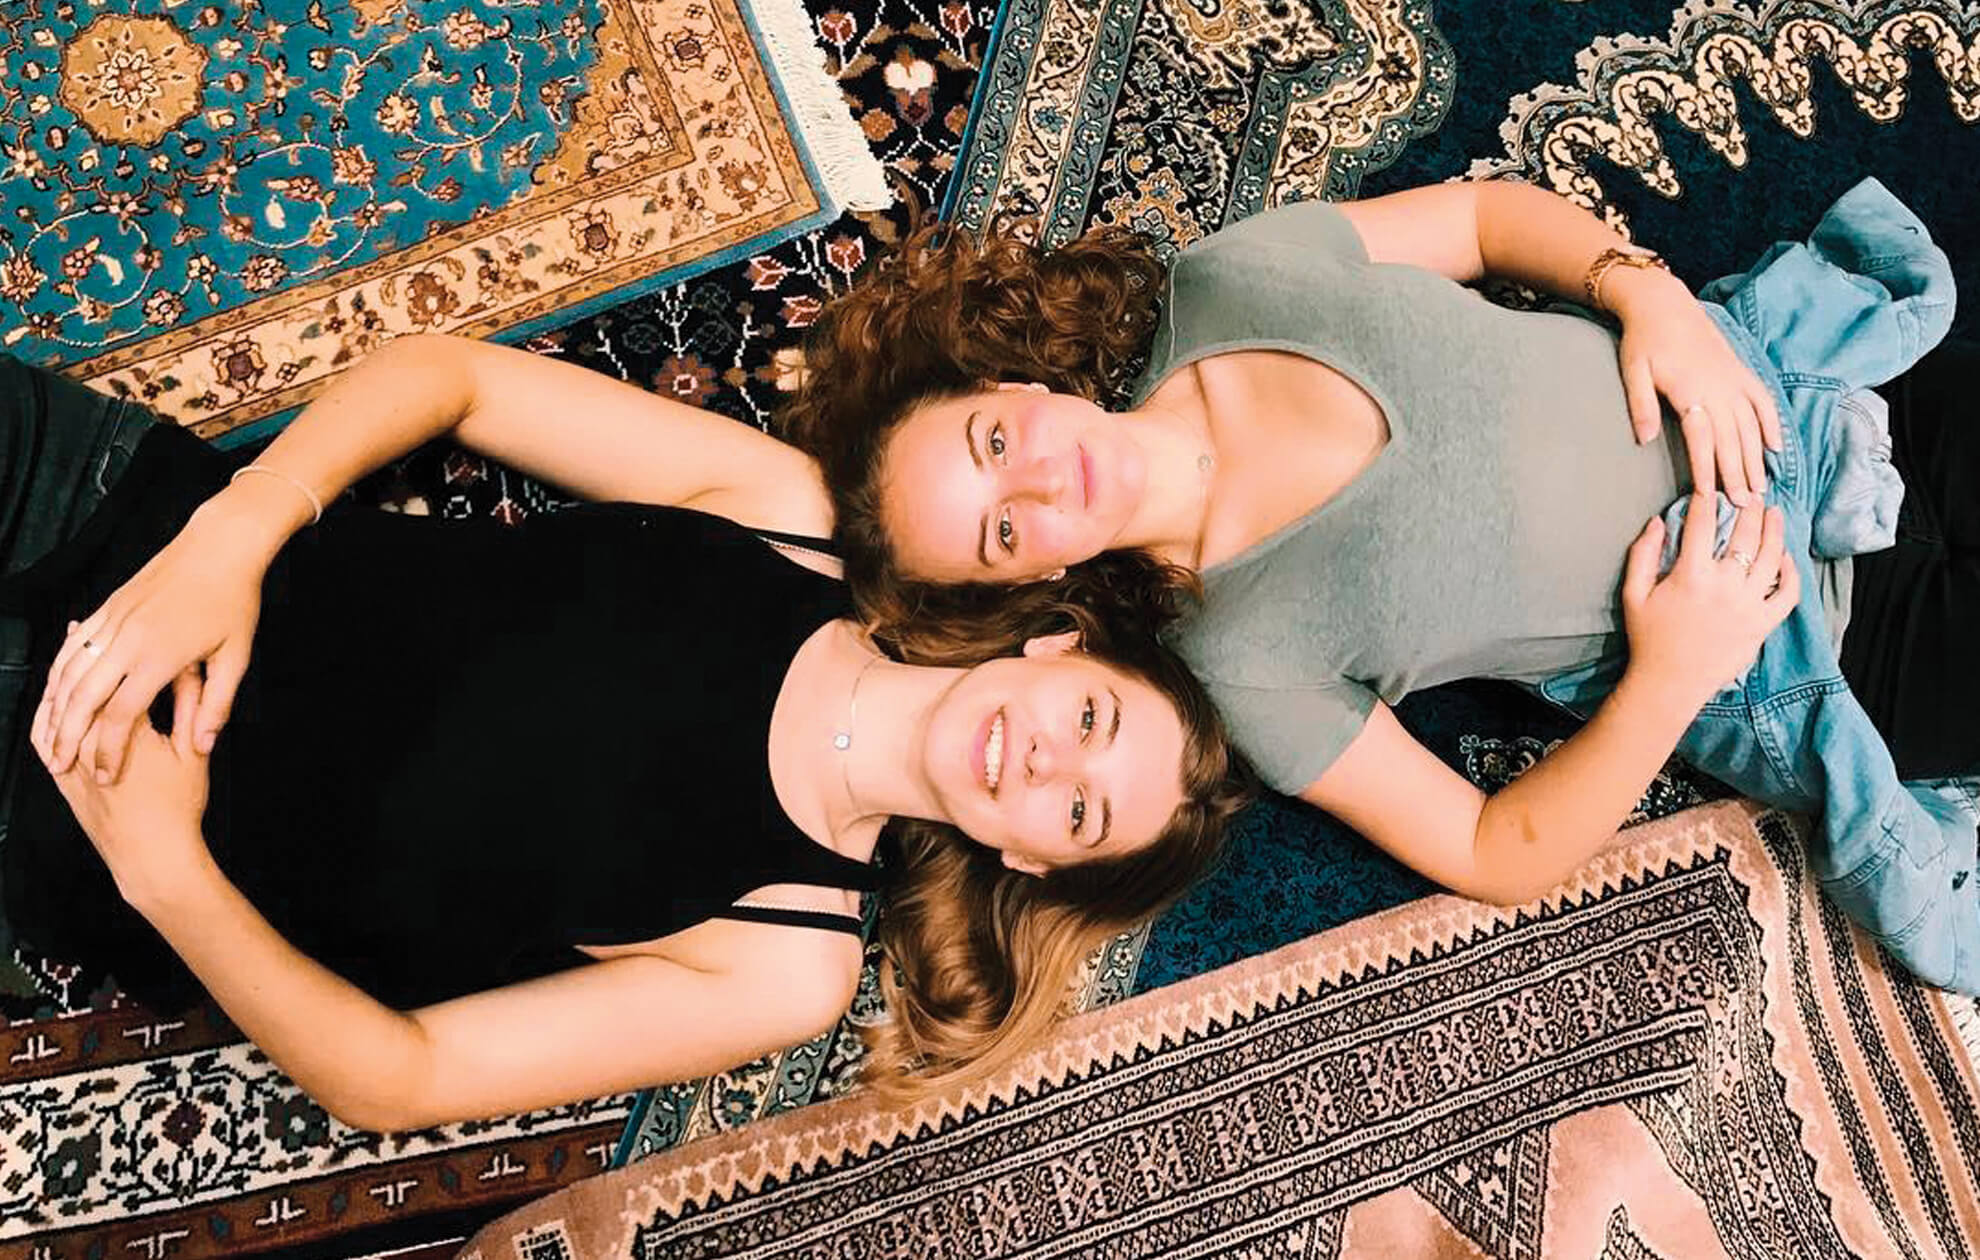 Two girls laying on traditional carpets in Morocco